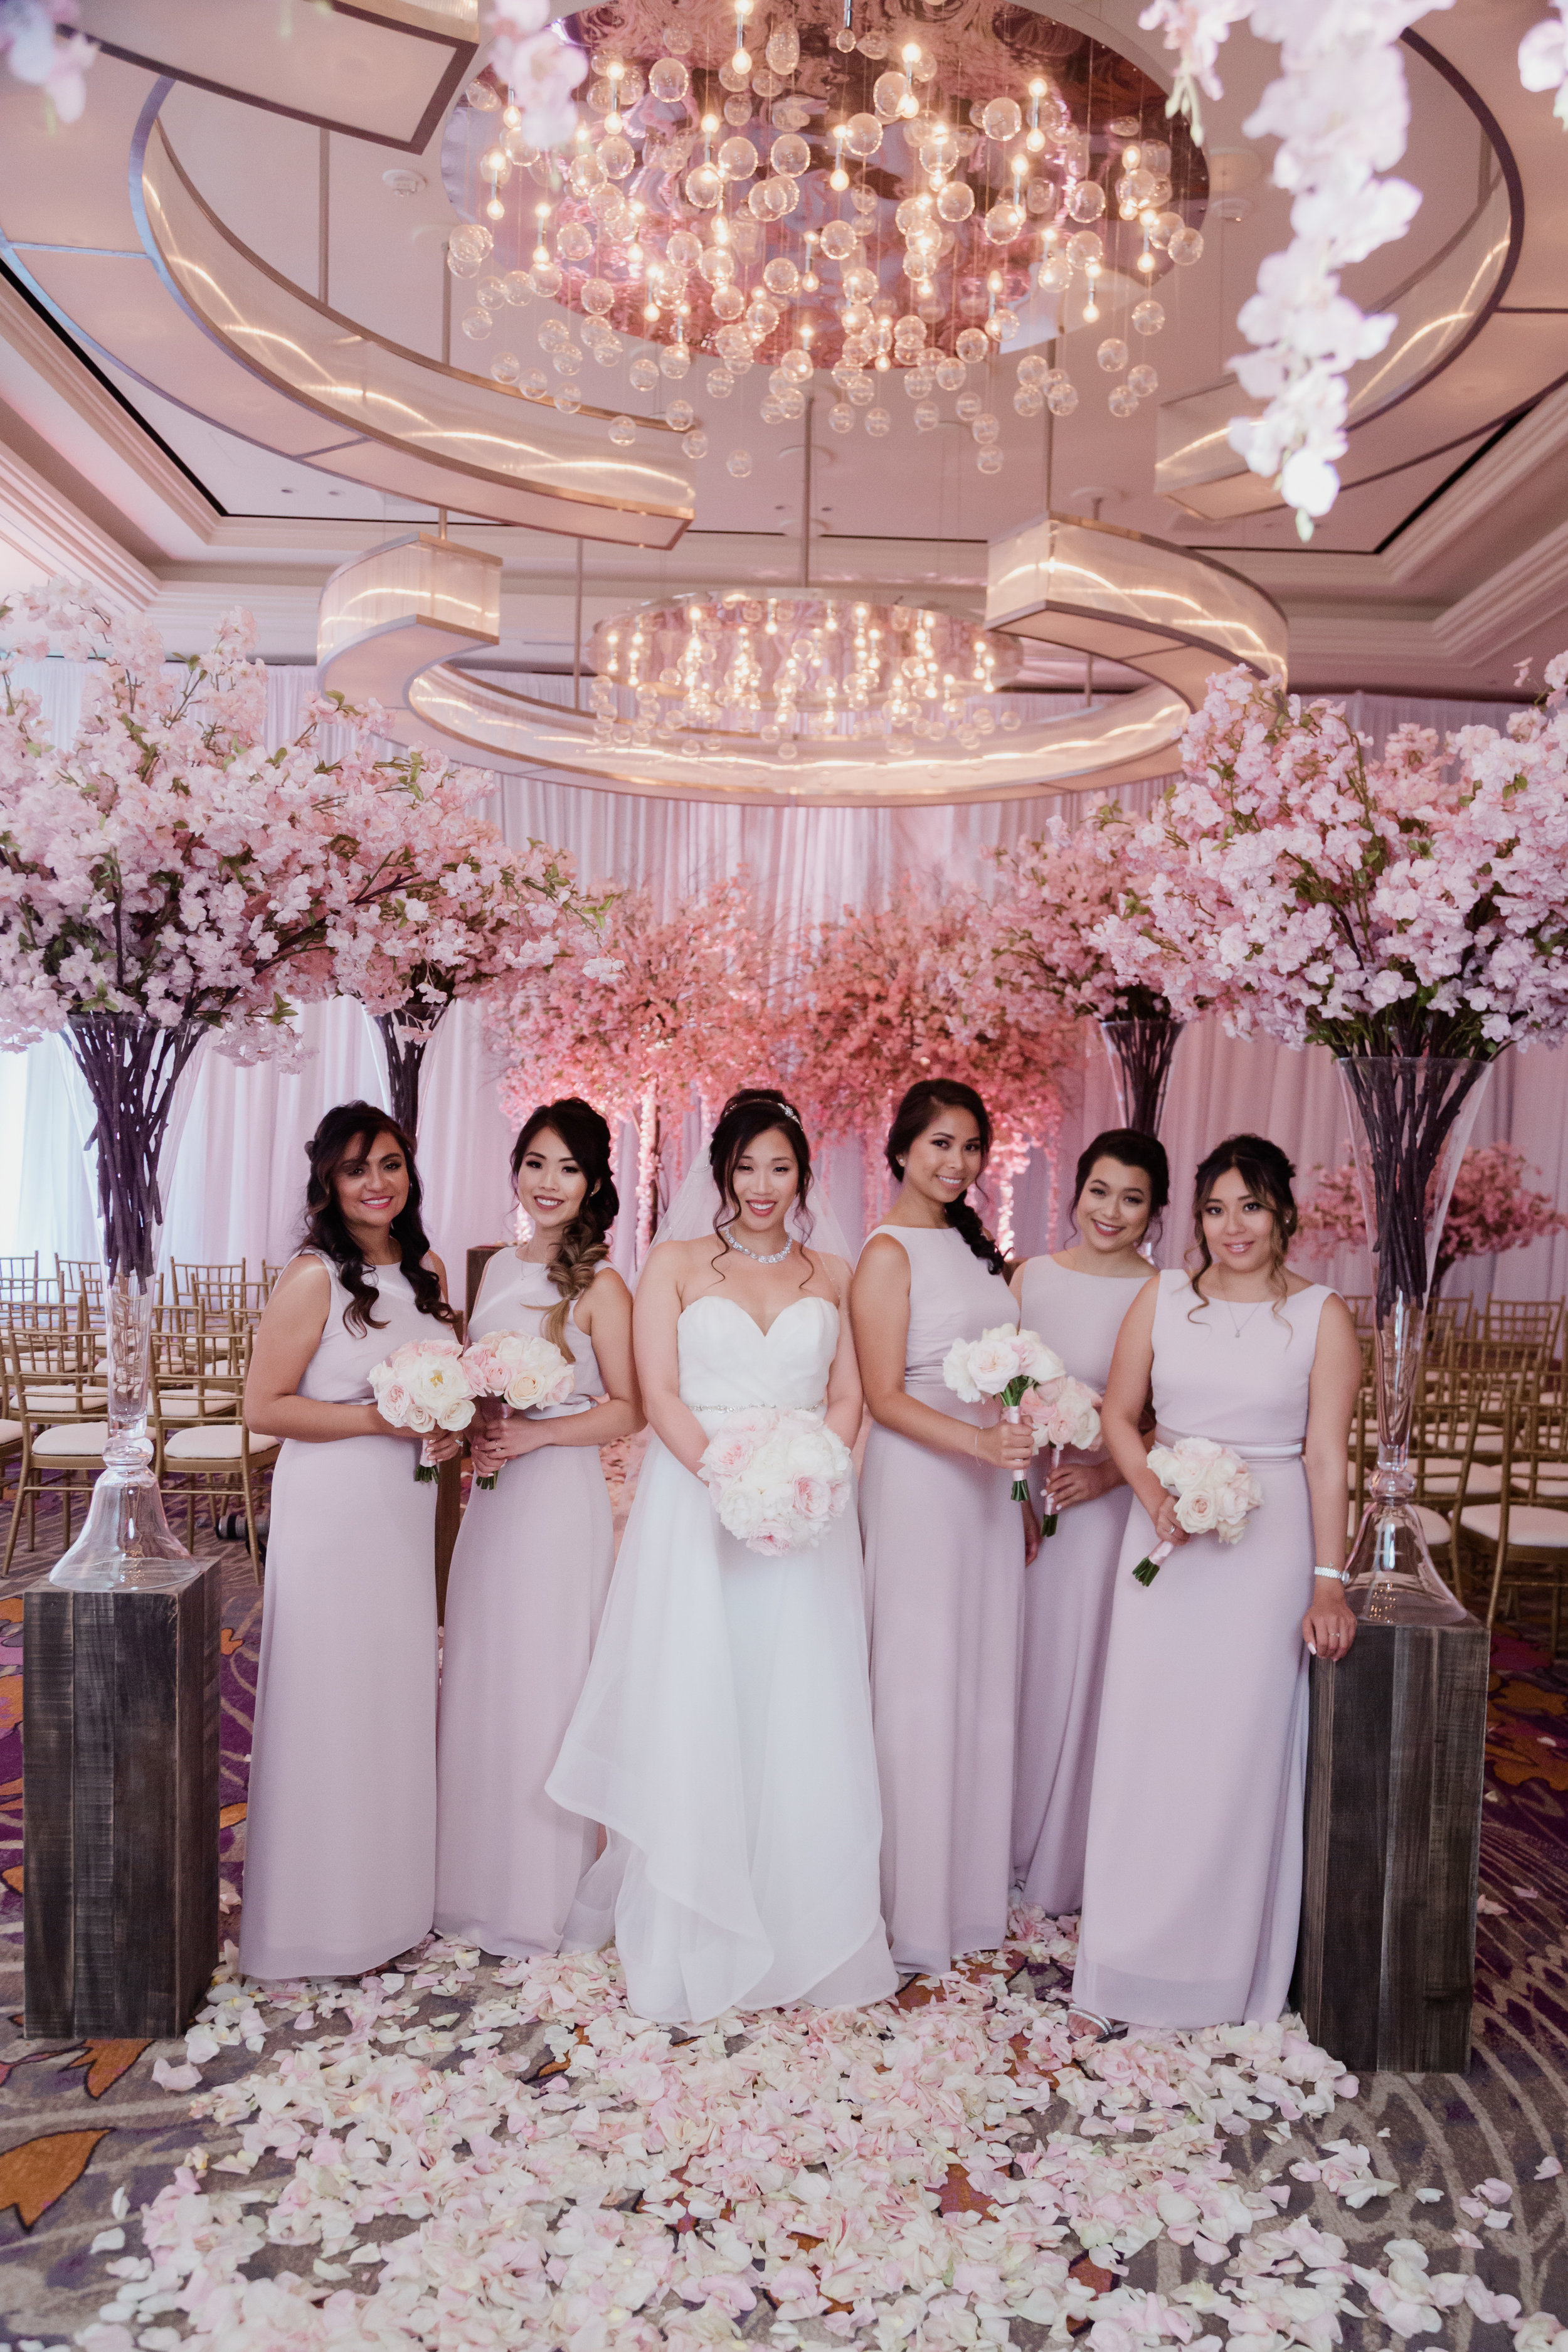 Bridesmaids in pink wedding ceremony with cherry blossom trees. Las Vegas Wedding Planner Andrea Eppolito. Photo by Adam Frazier.